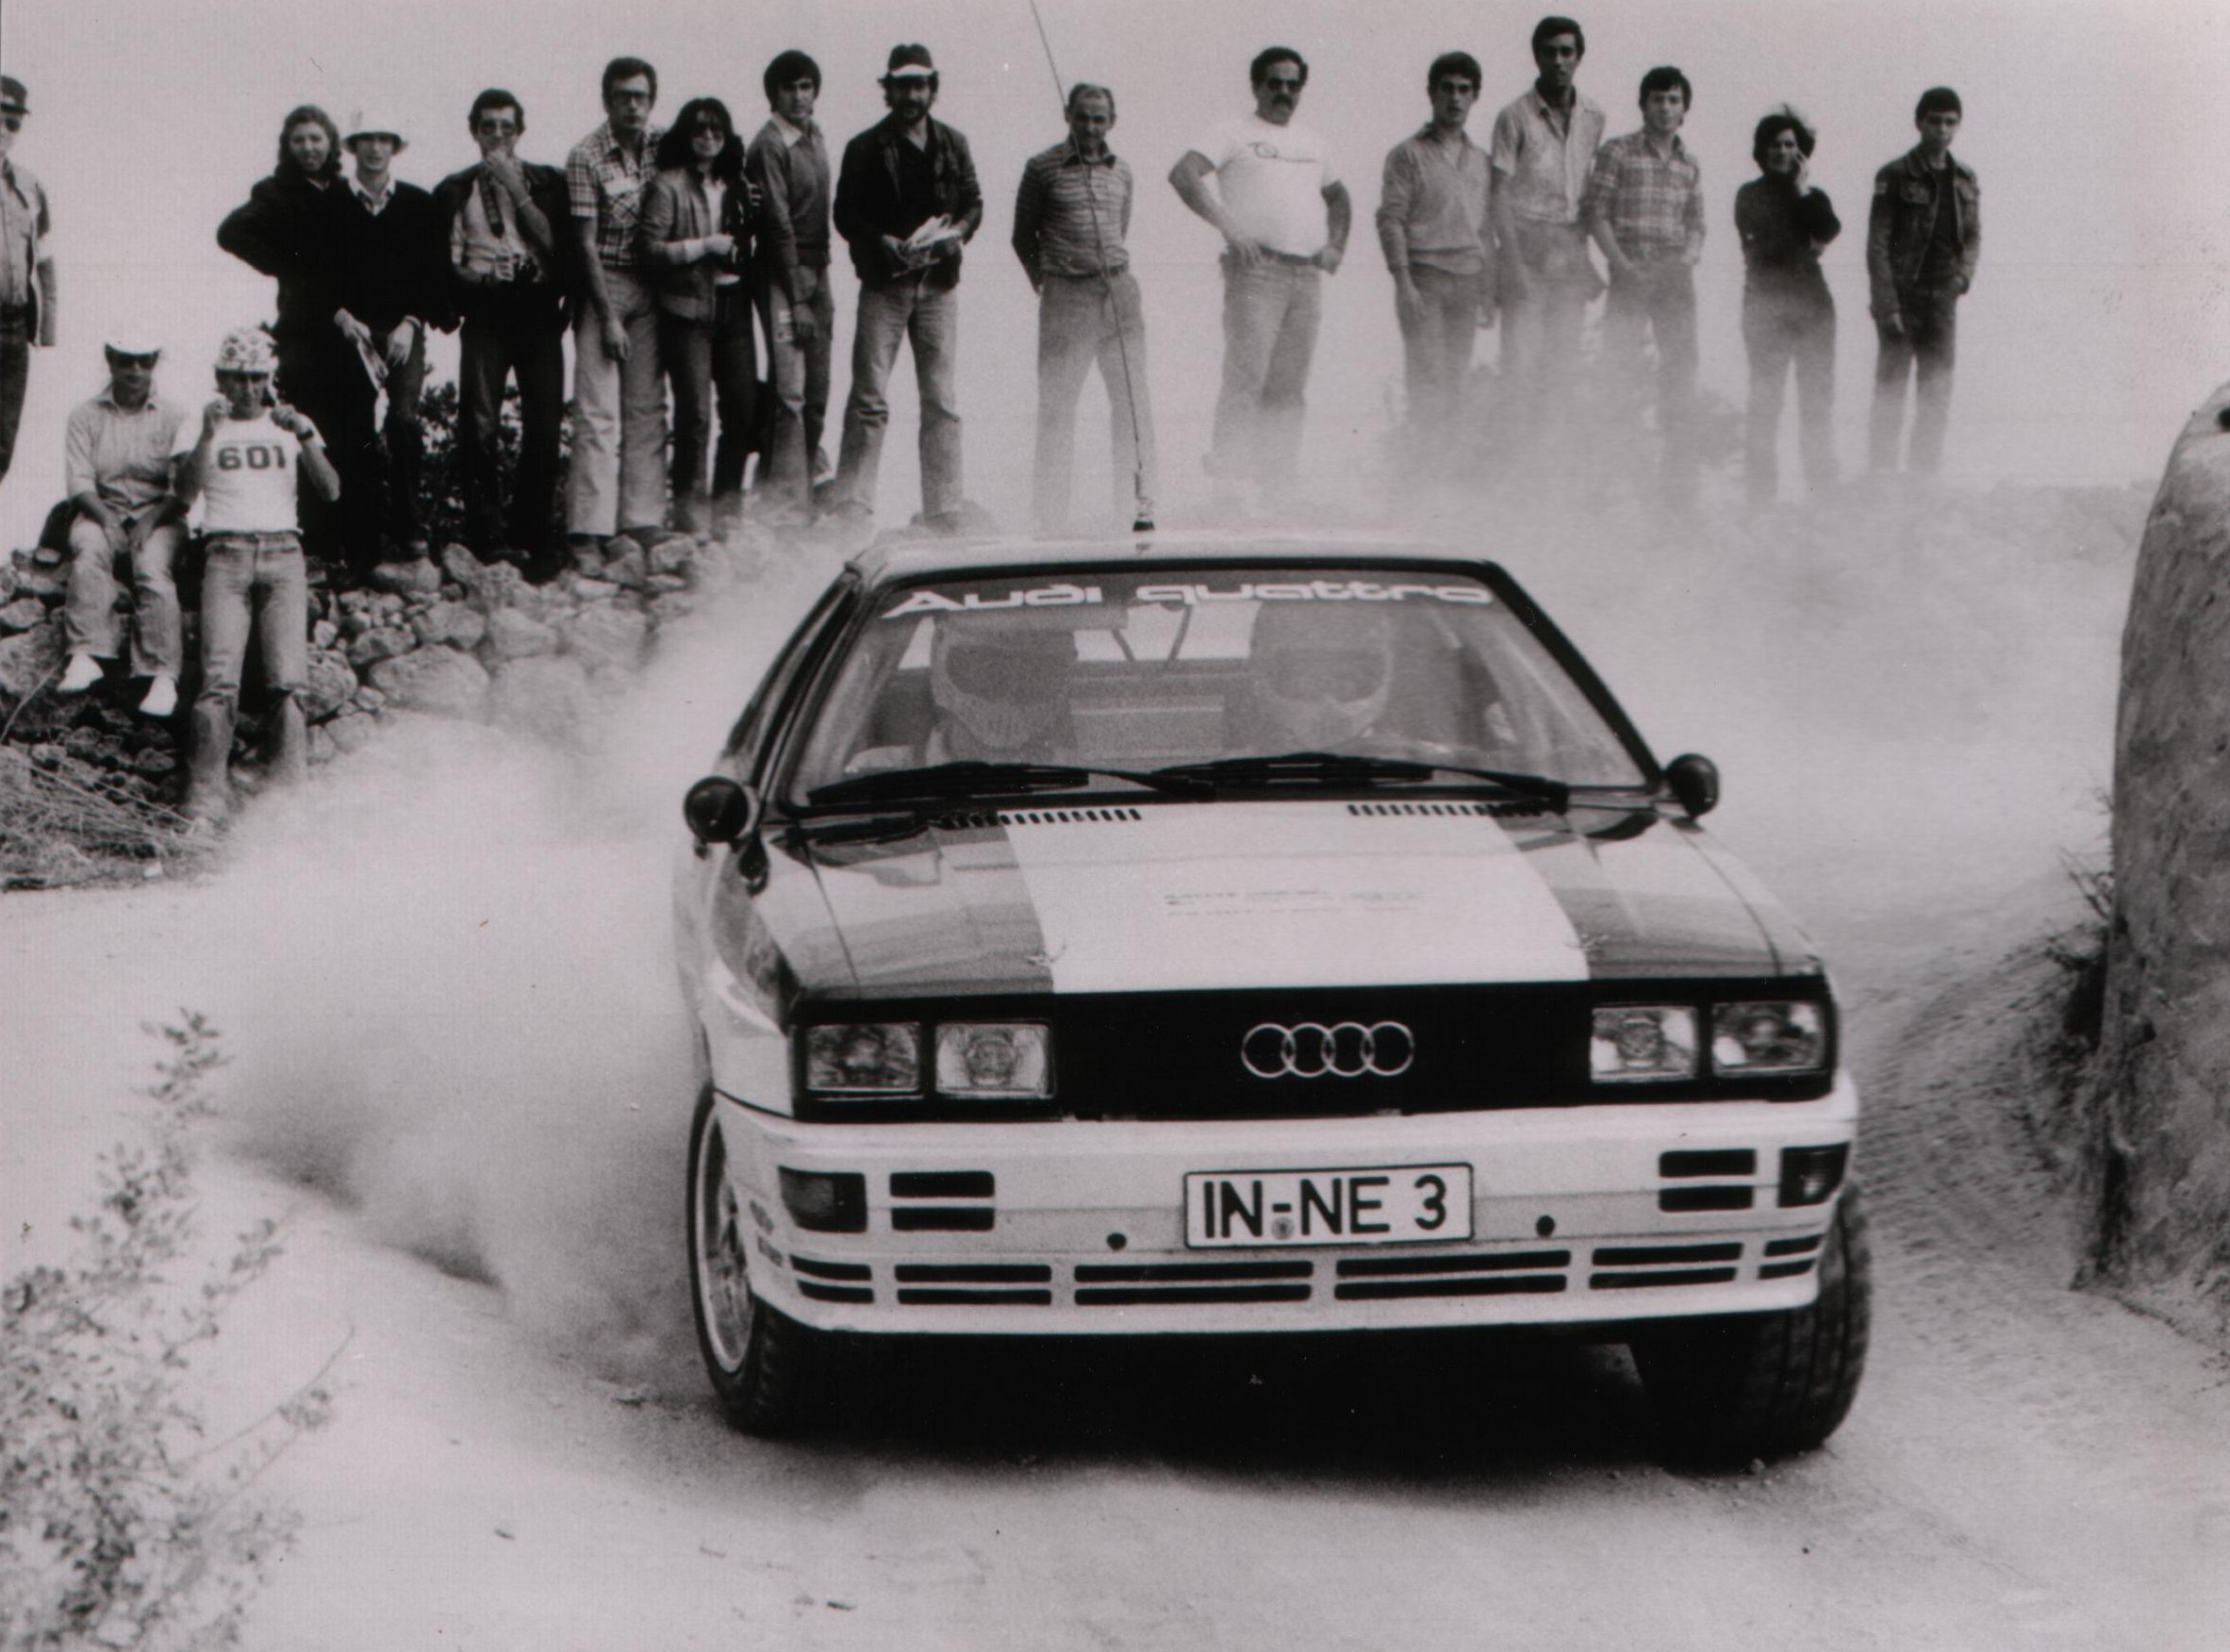 cars Audi dust rally HD Wallpaper